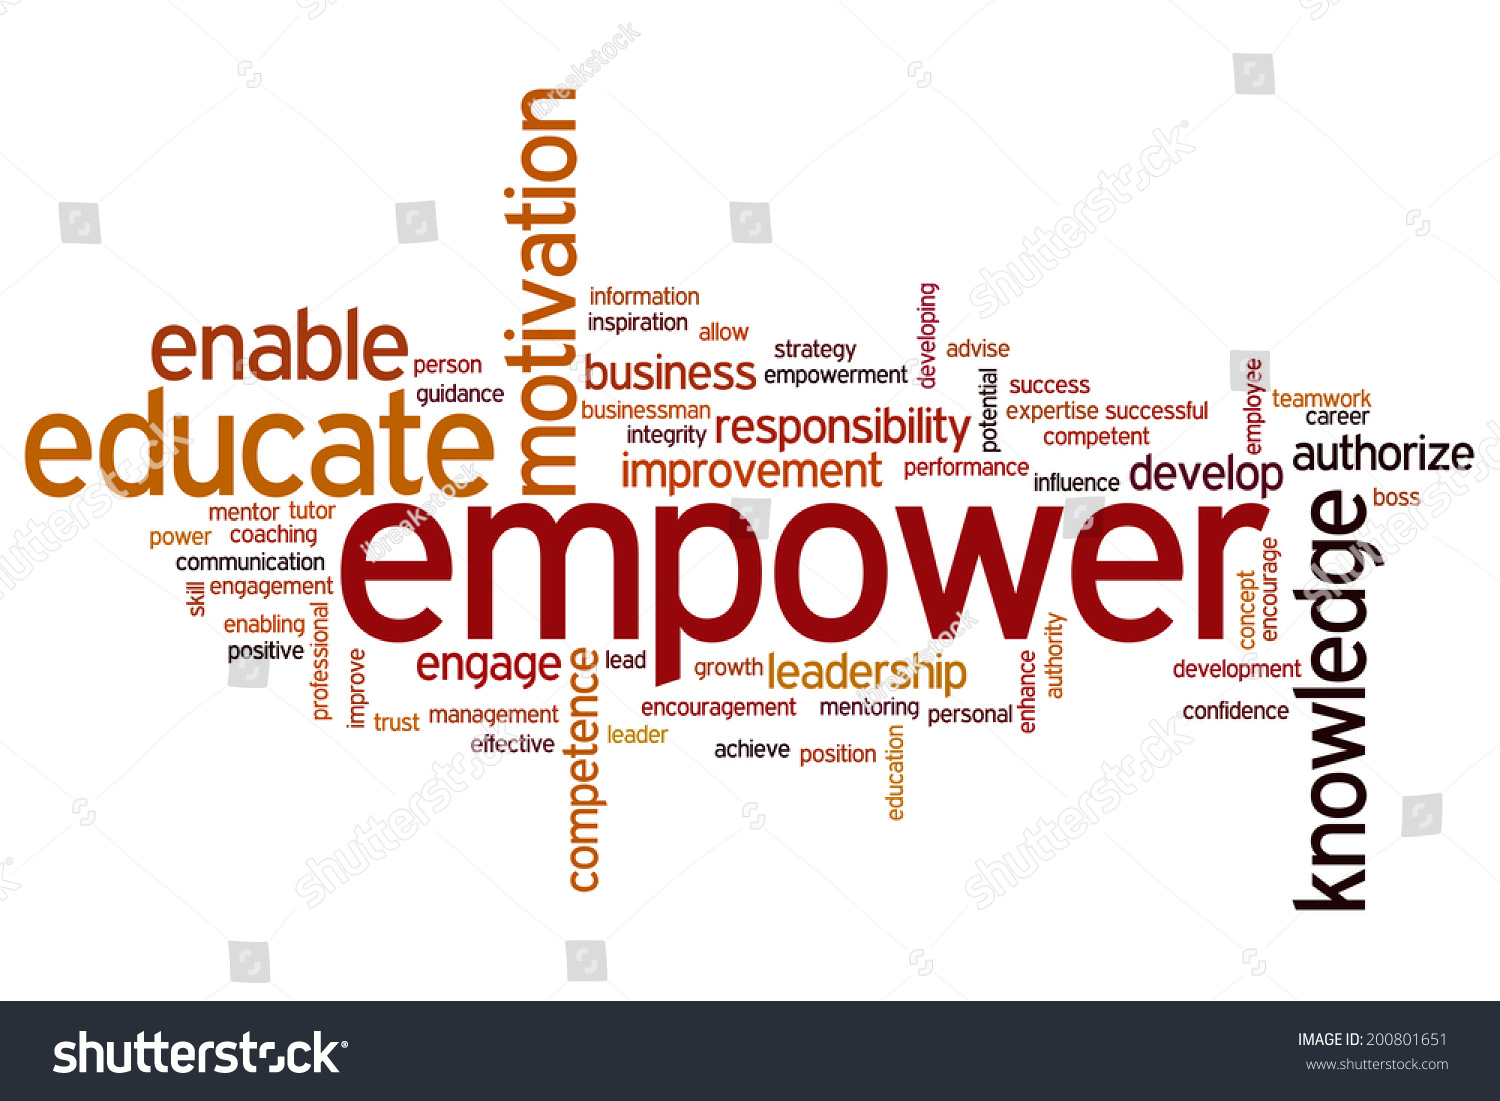 Image result for images for the word empower